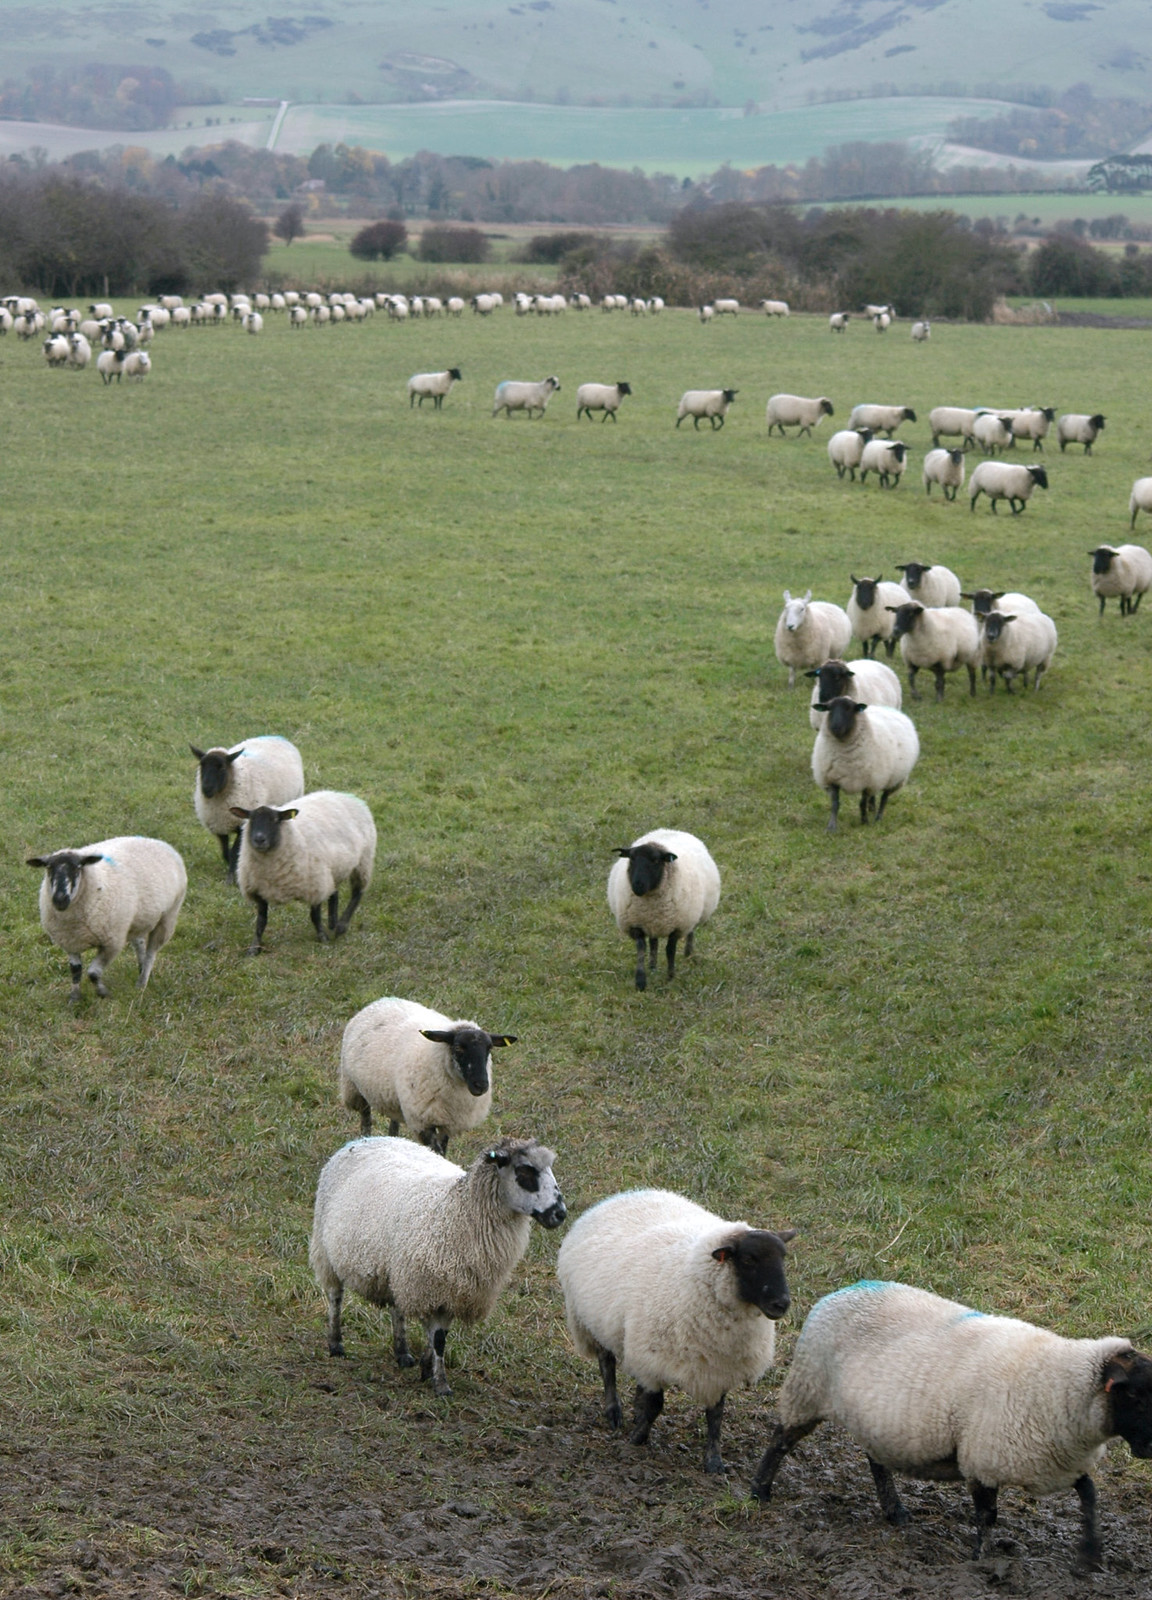 Sheep in a queue? I was most bemused by this flock of sheep which weaved its way in an orderly line from one end of the field to the other. There were no sheepdogs or farmers in sight to keep them in line and there seemed no obvious reason for them walking in curves rather than in a straight line. Surely this cannot be normal behaviour!